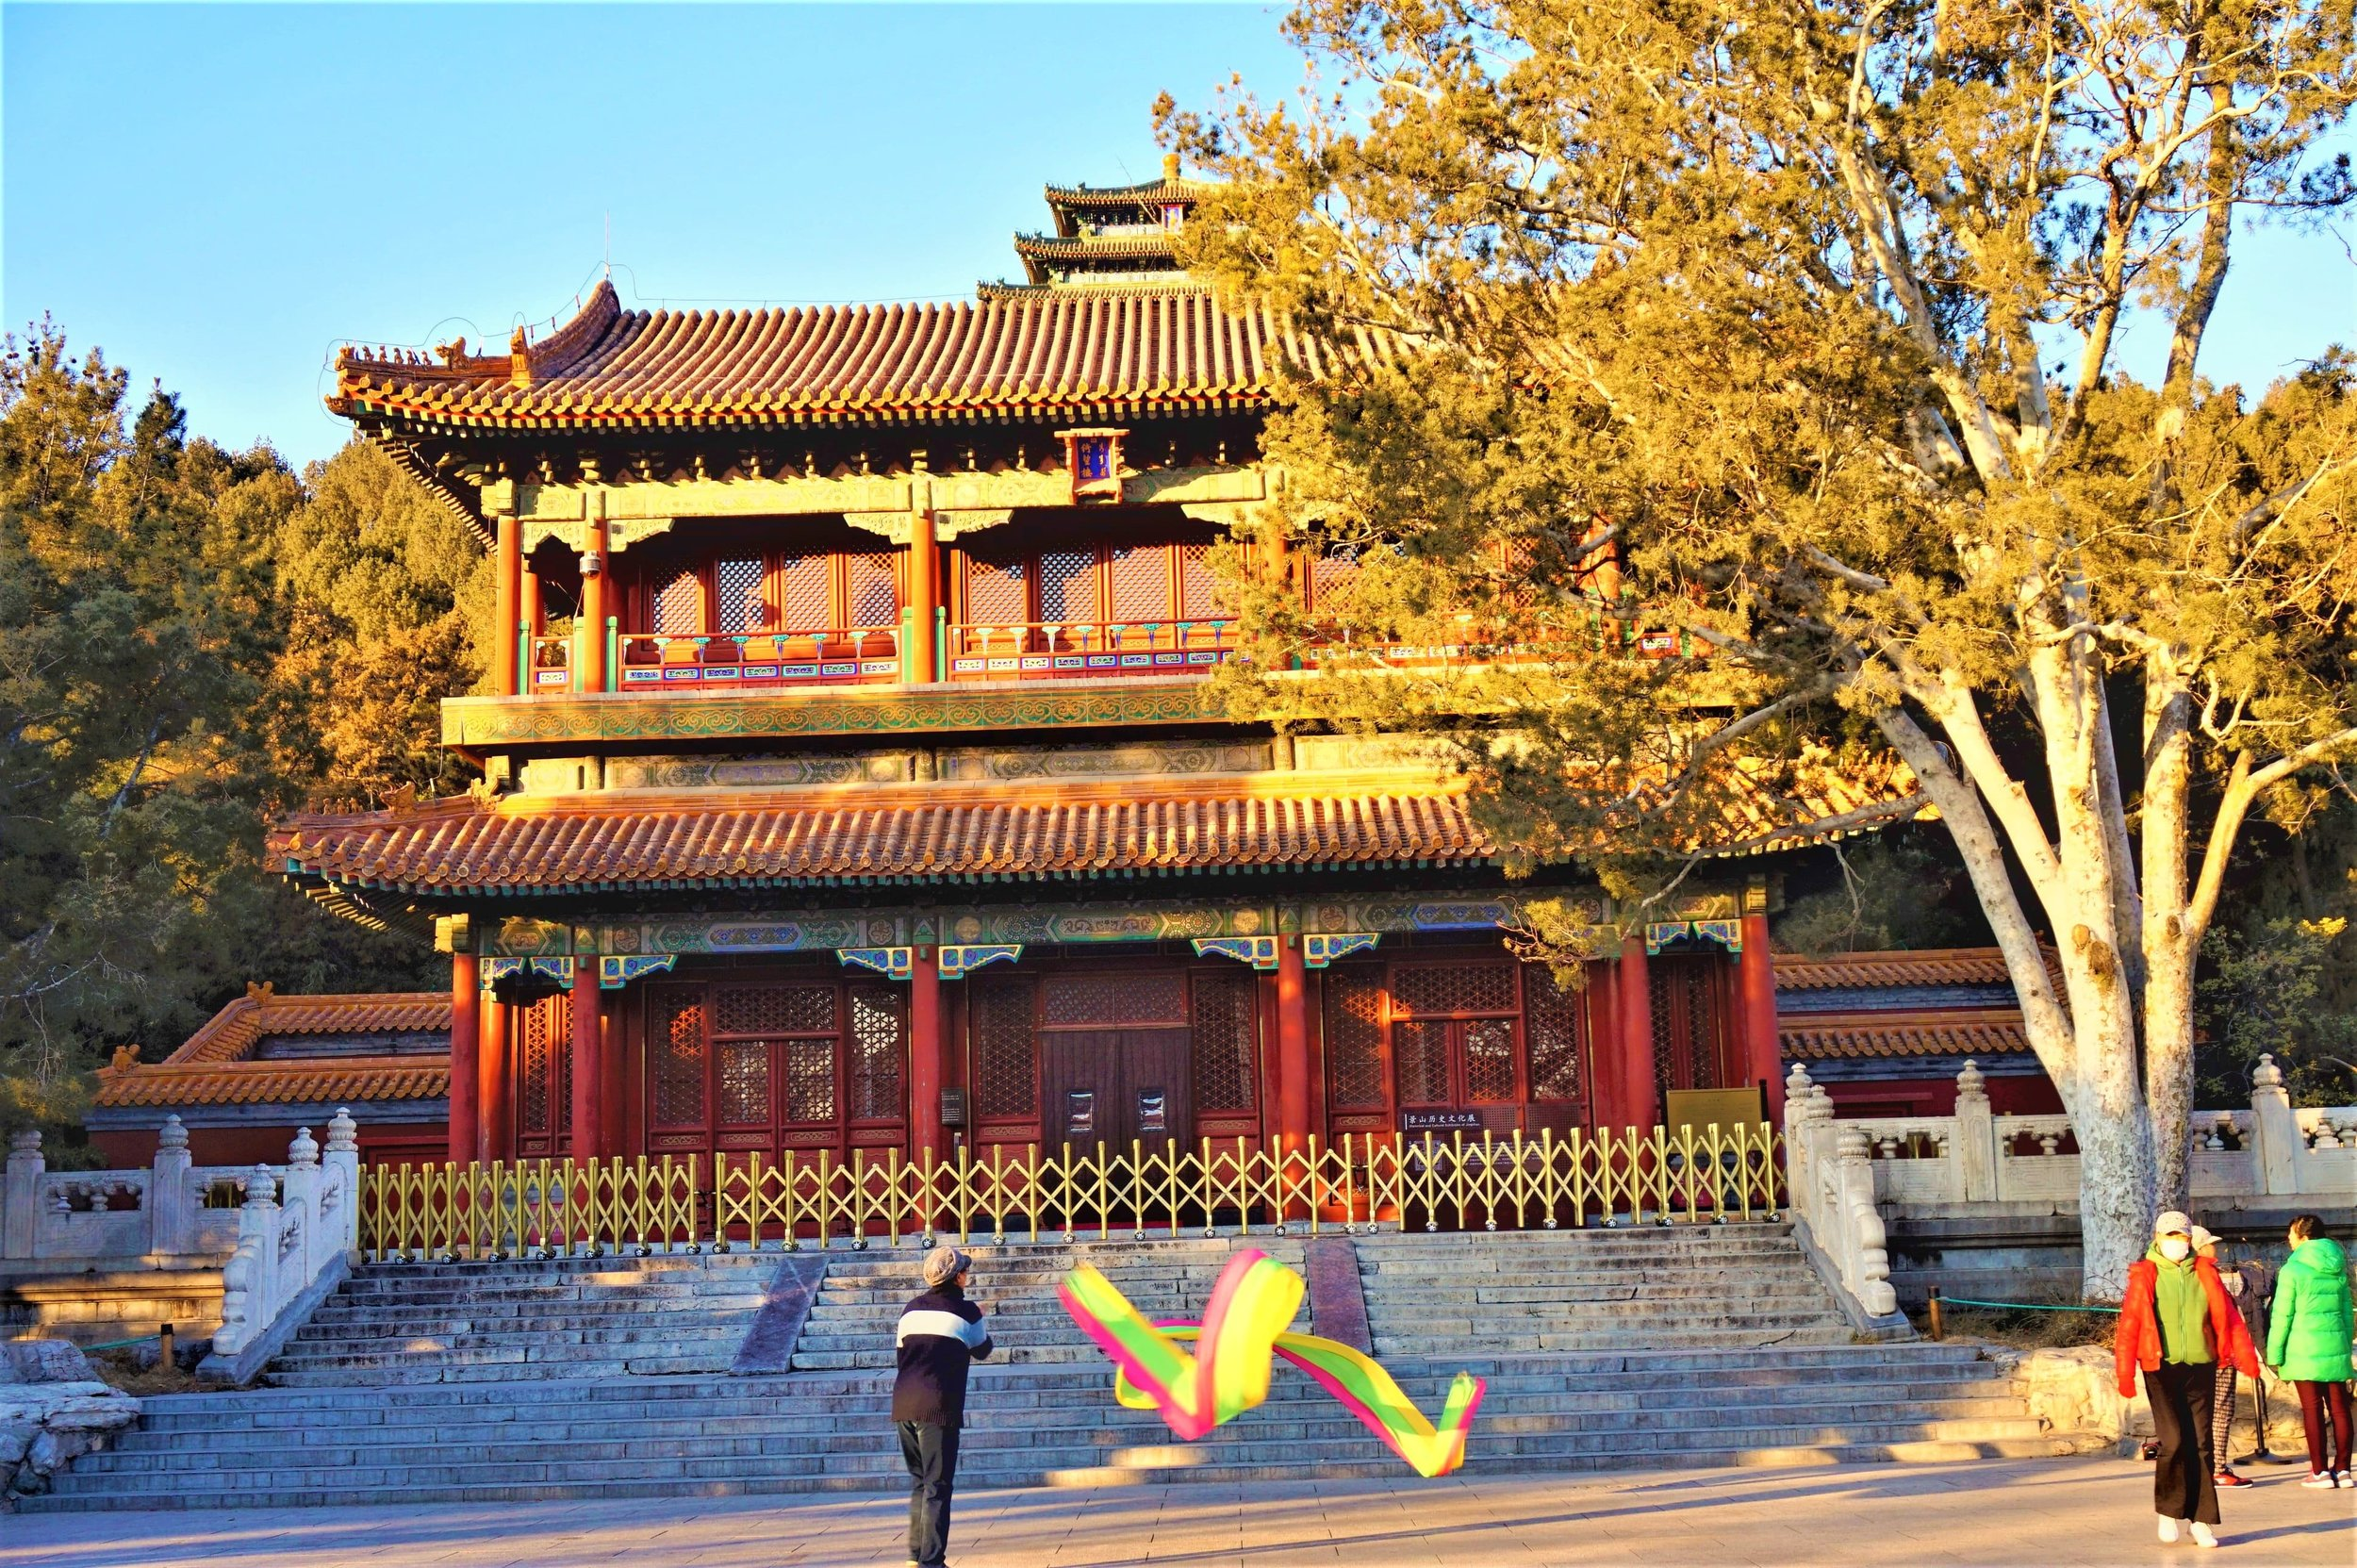 A visit to the Jingshan Park is a must-see during your Beijing layover in China!